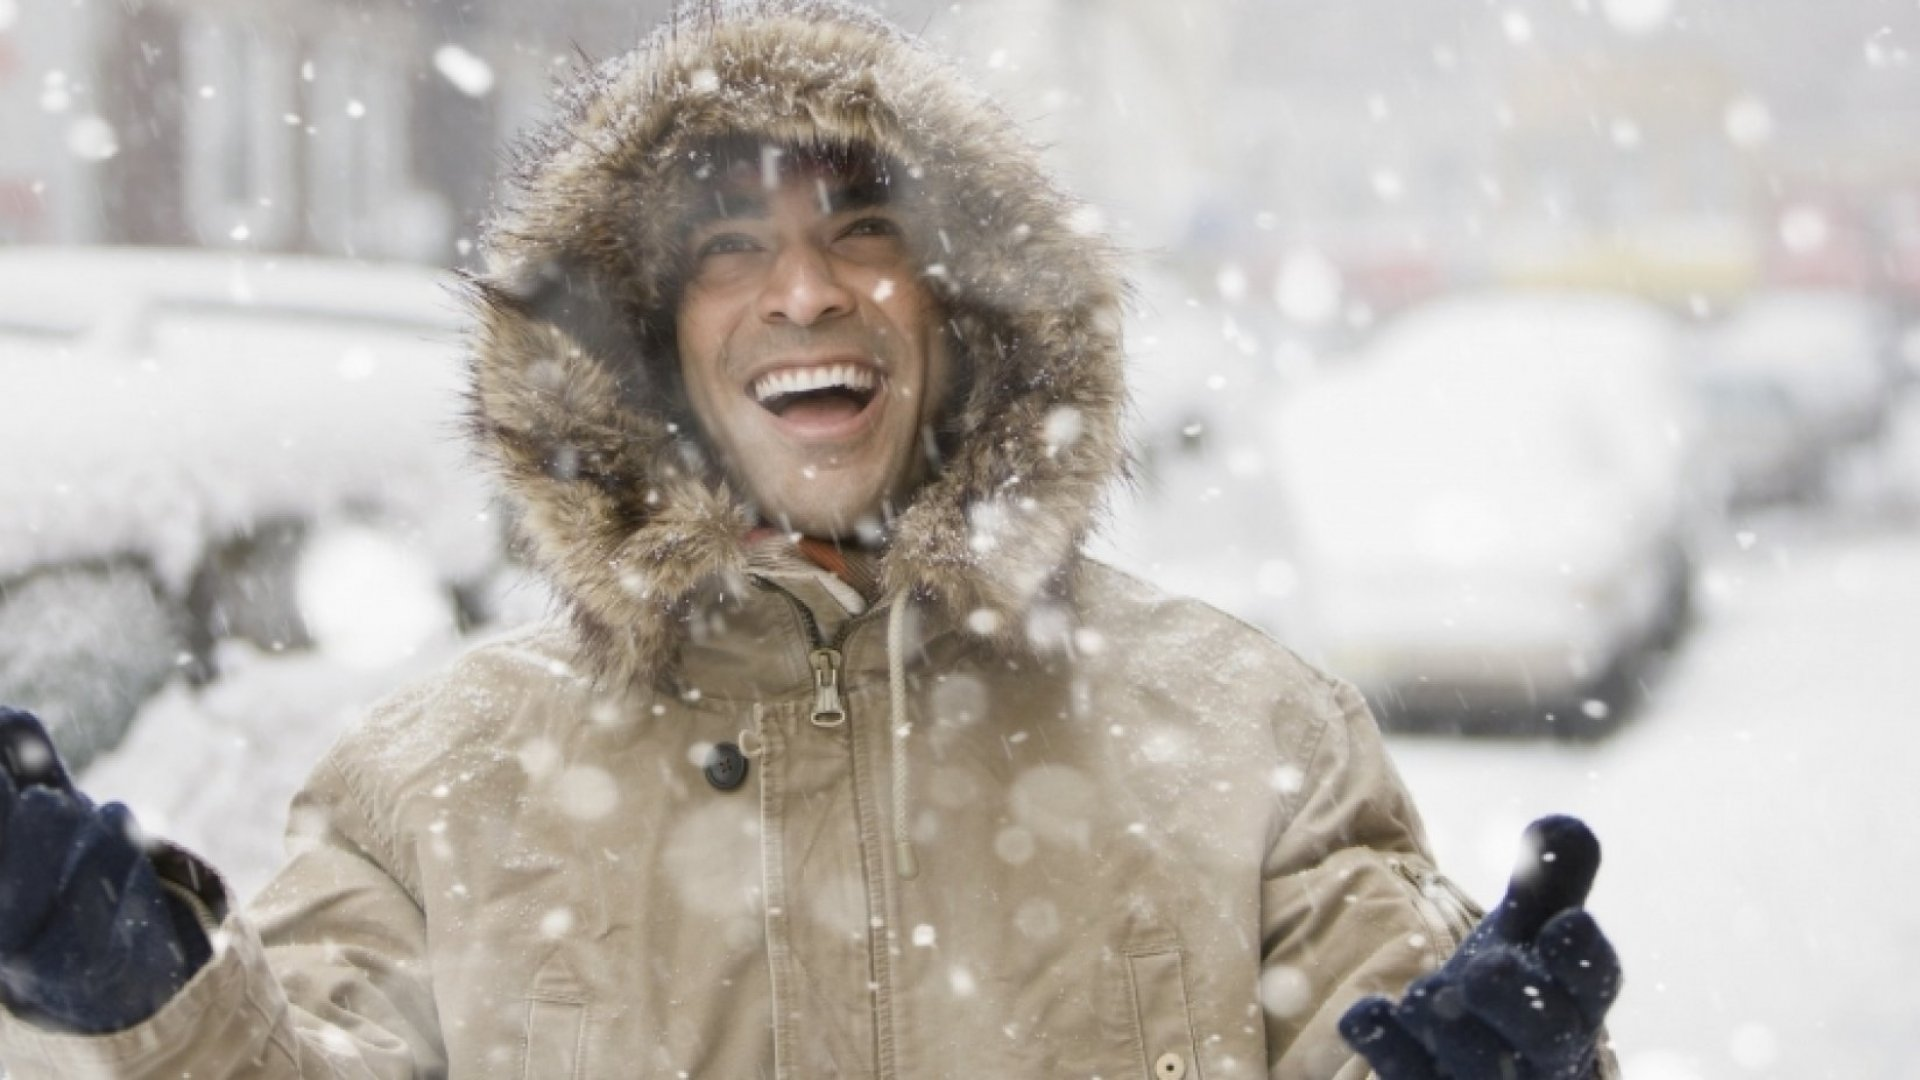 Your Brain Actually Works Better in Winter, According to Science